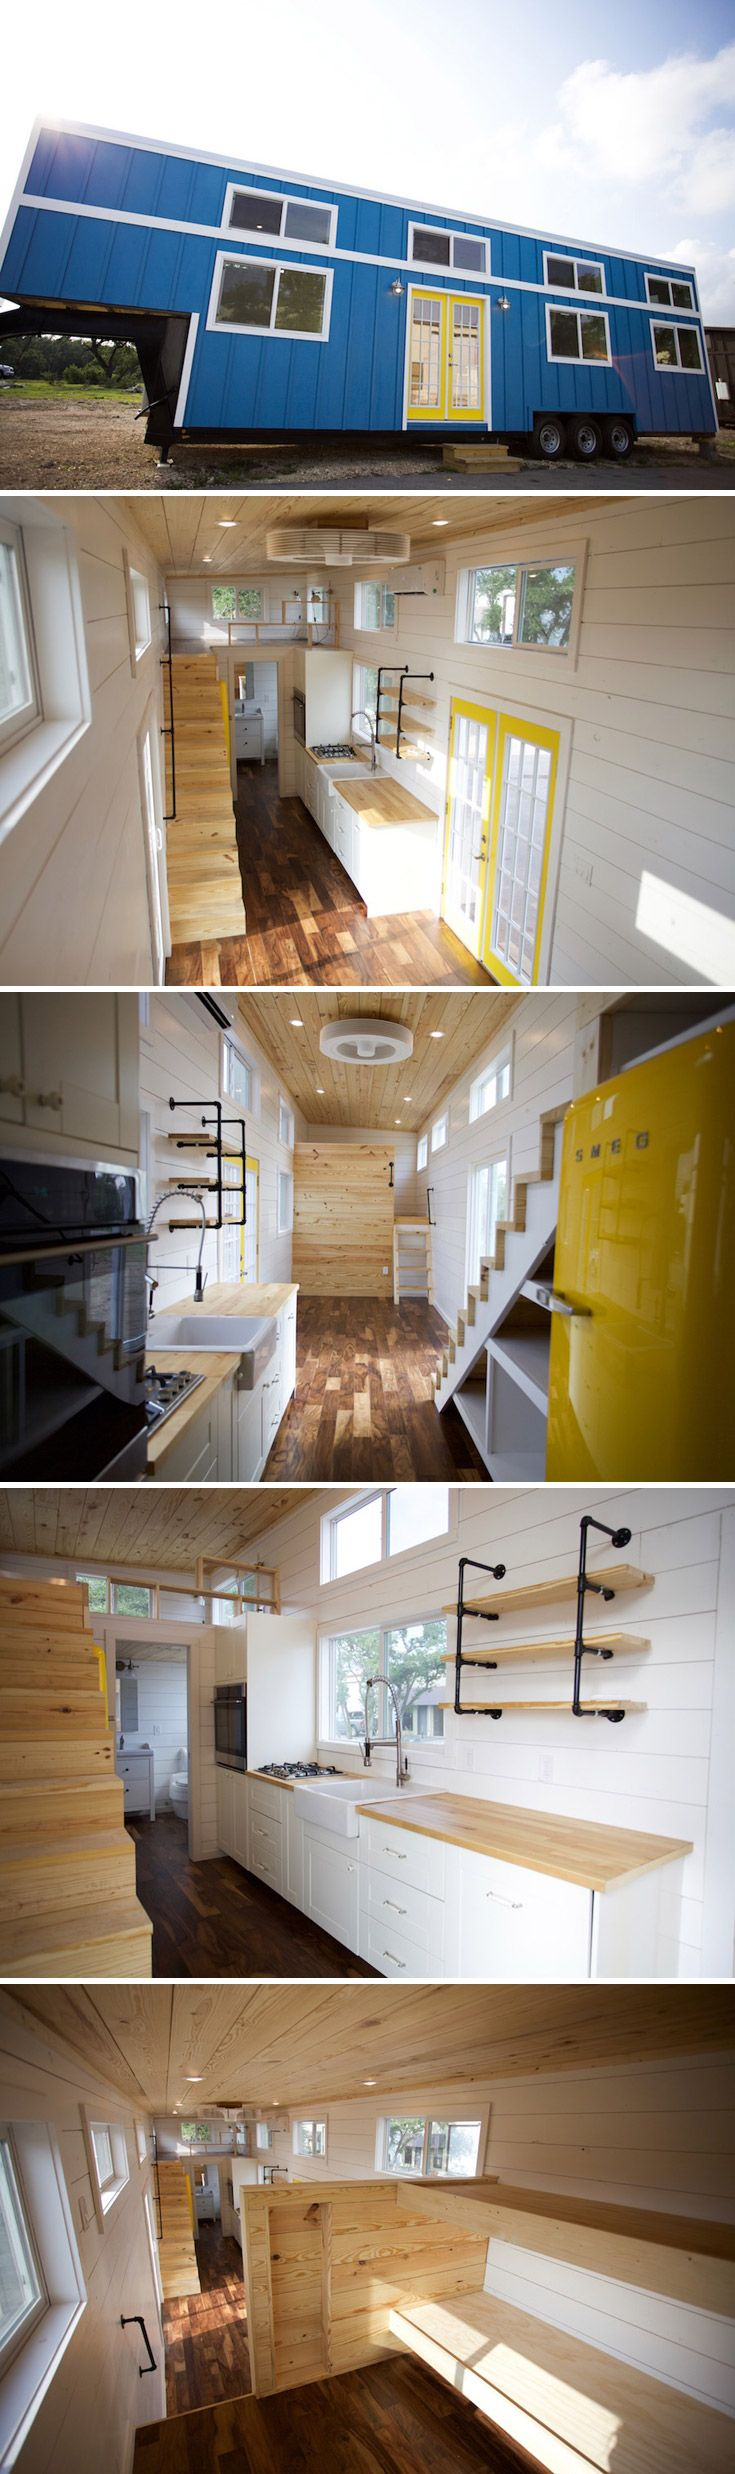 View toward kitchen the alpha tiny home by new frontier tiny homes - Custom Gooseneck By Nomad Tiny Homes